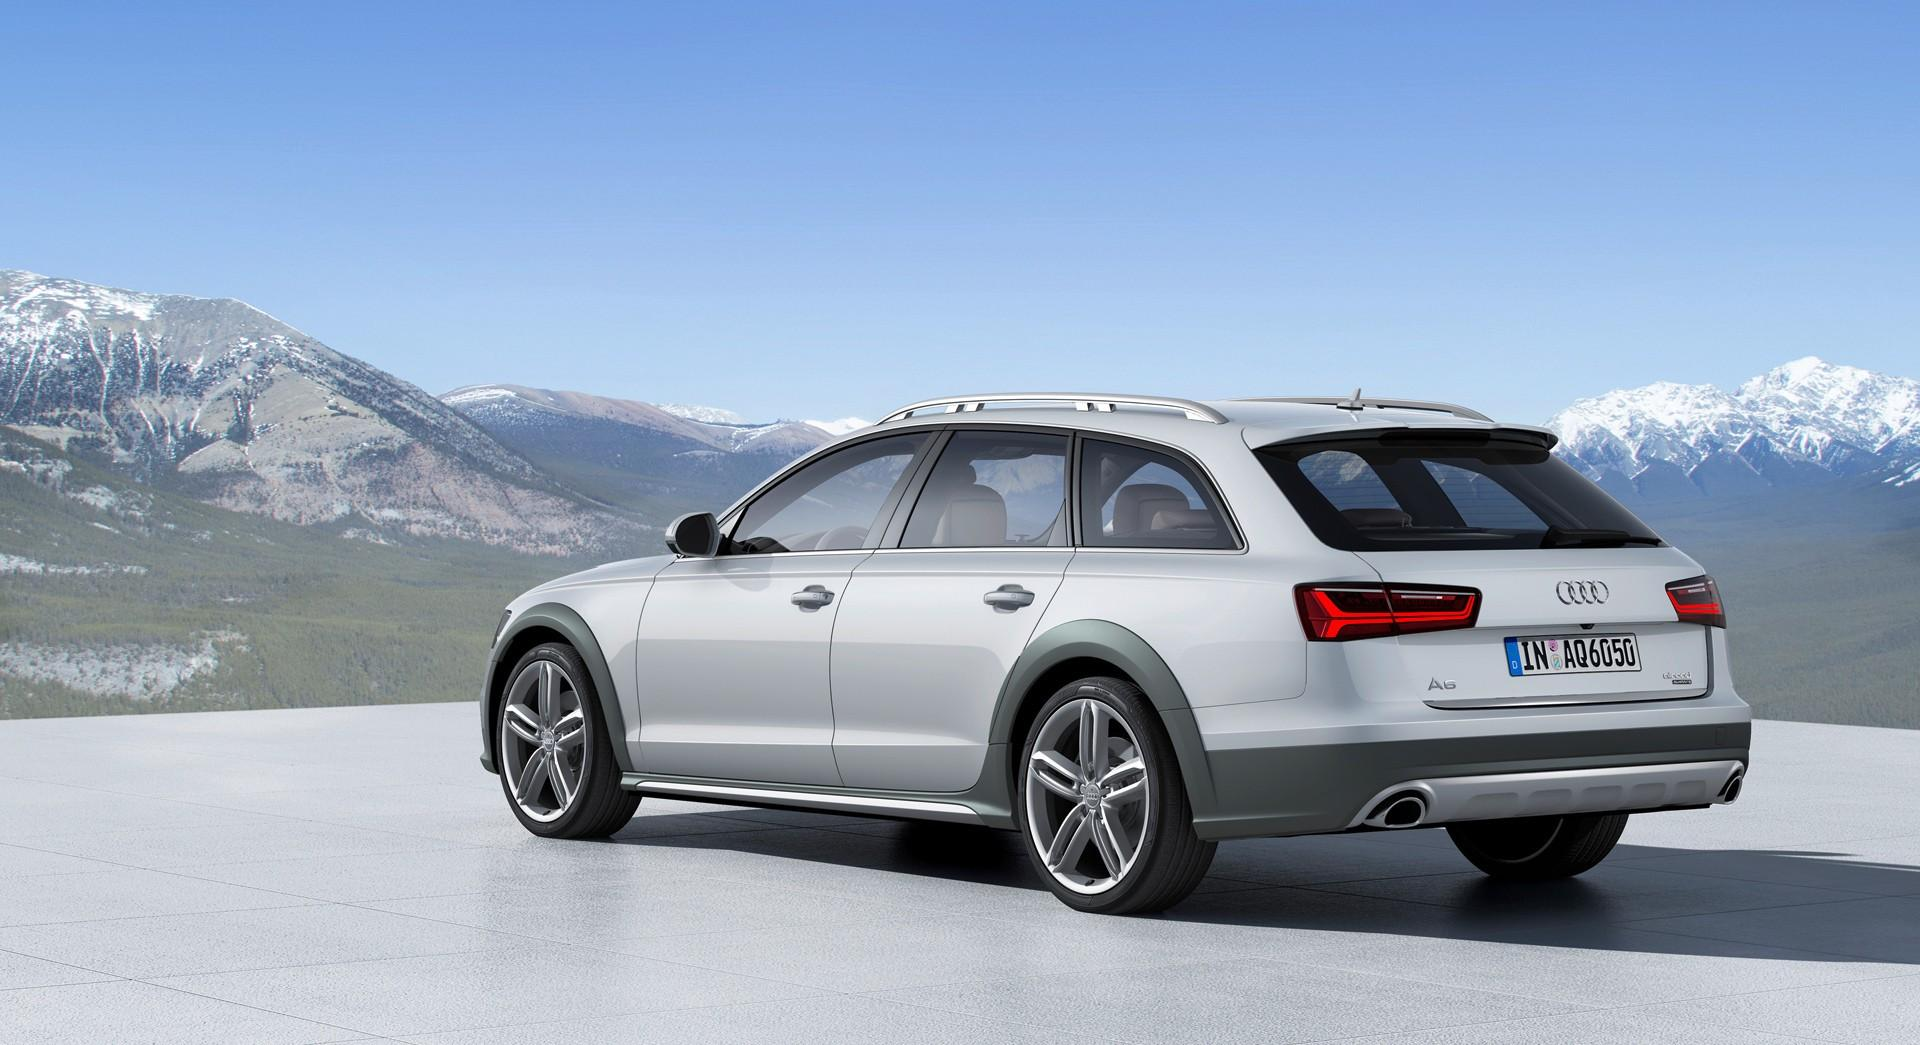 audi a6 allroad - HD Desktop Wallpapers | 4k HD